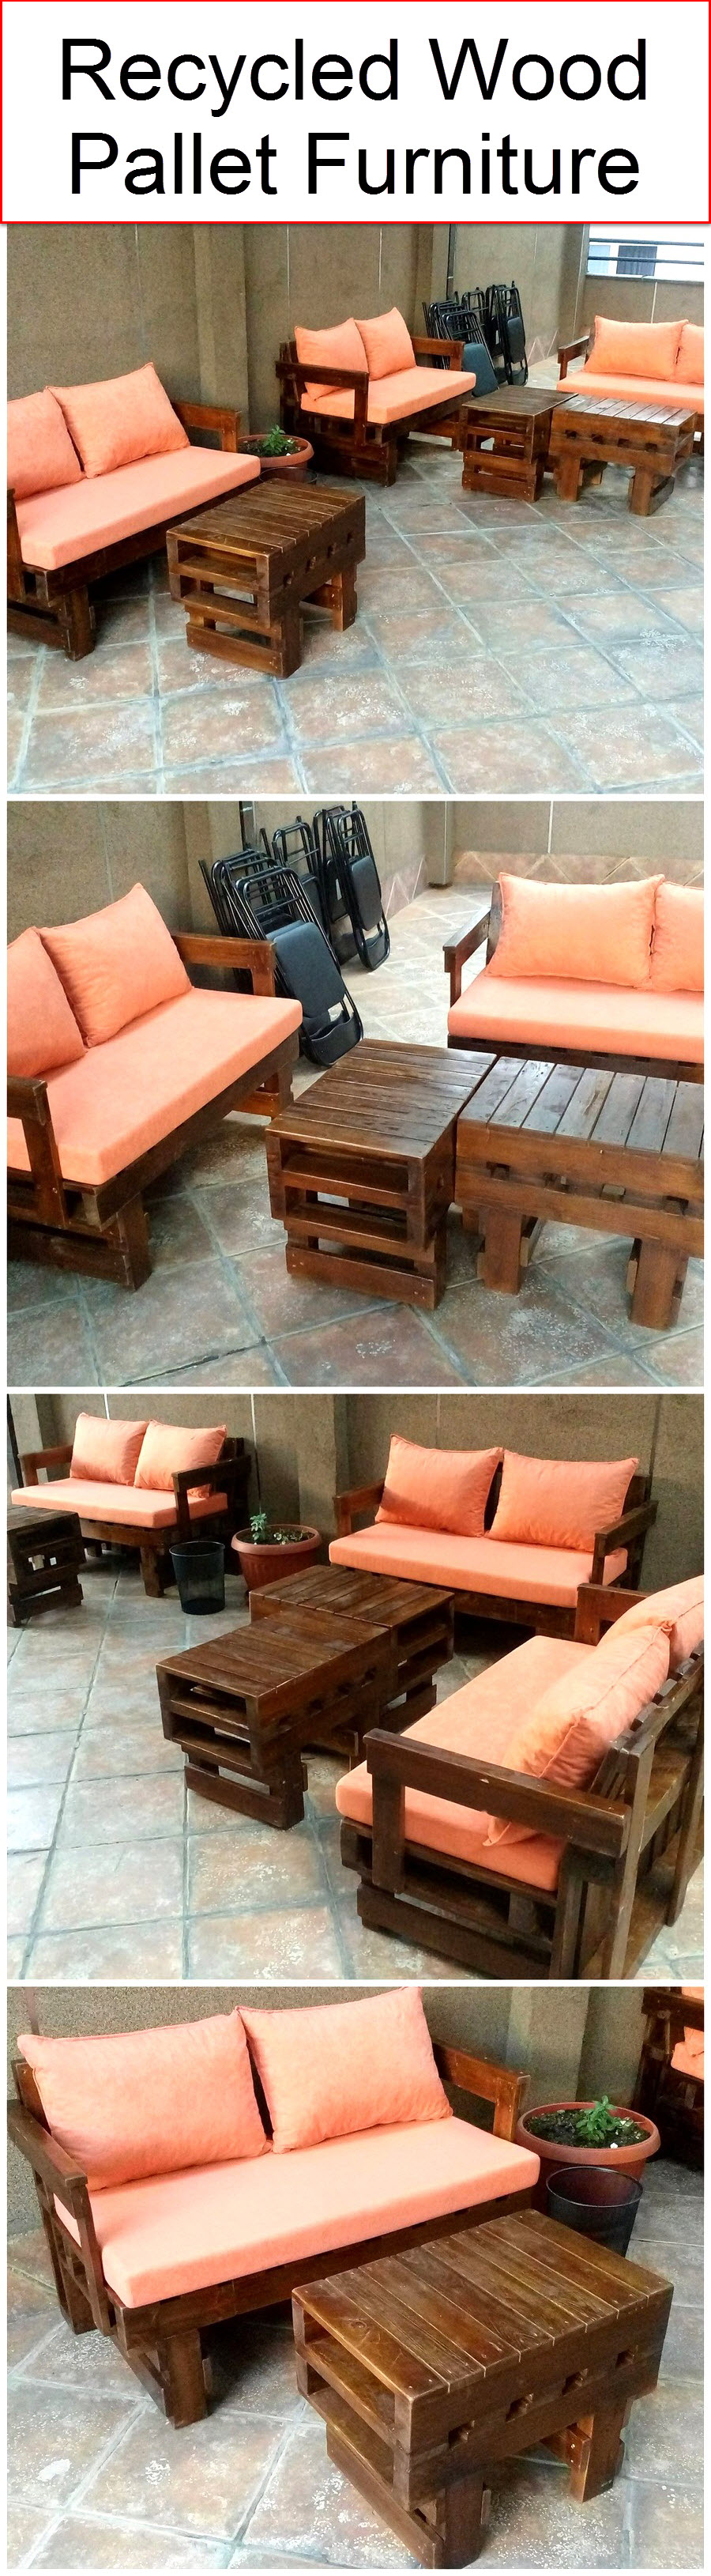 recycled-wood-pallet-furniture